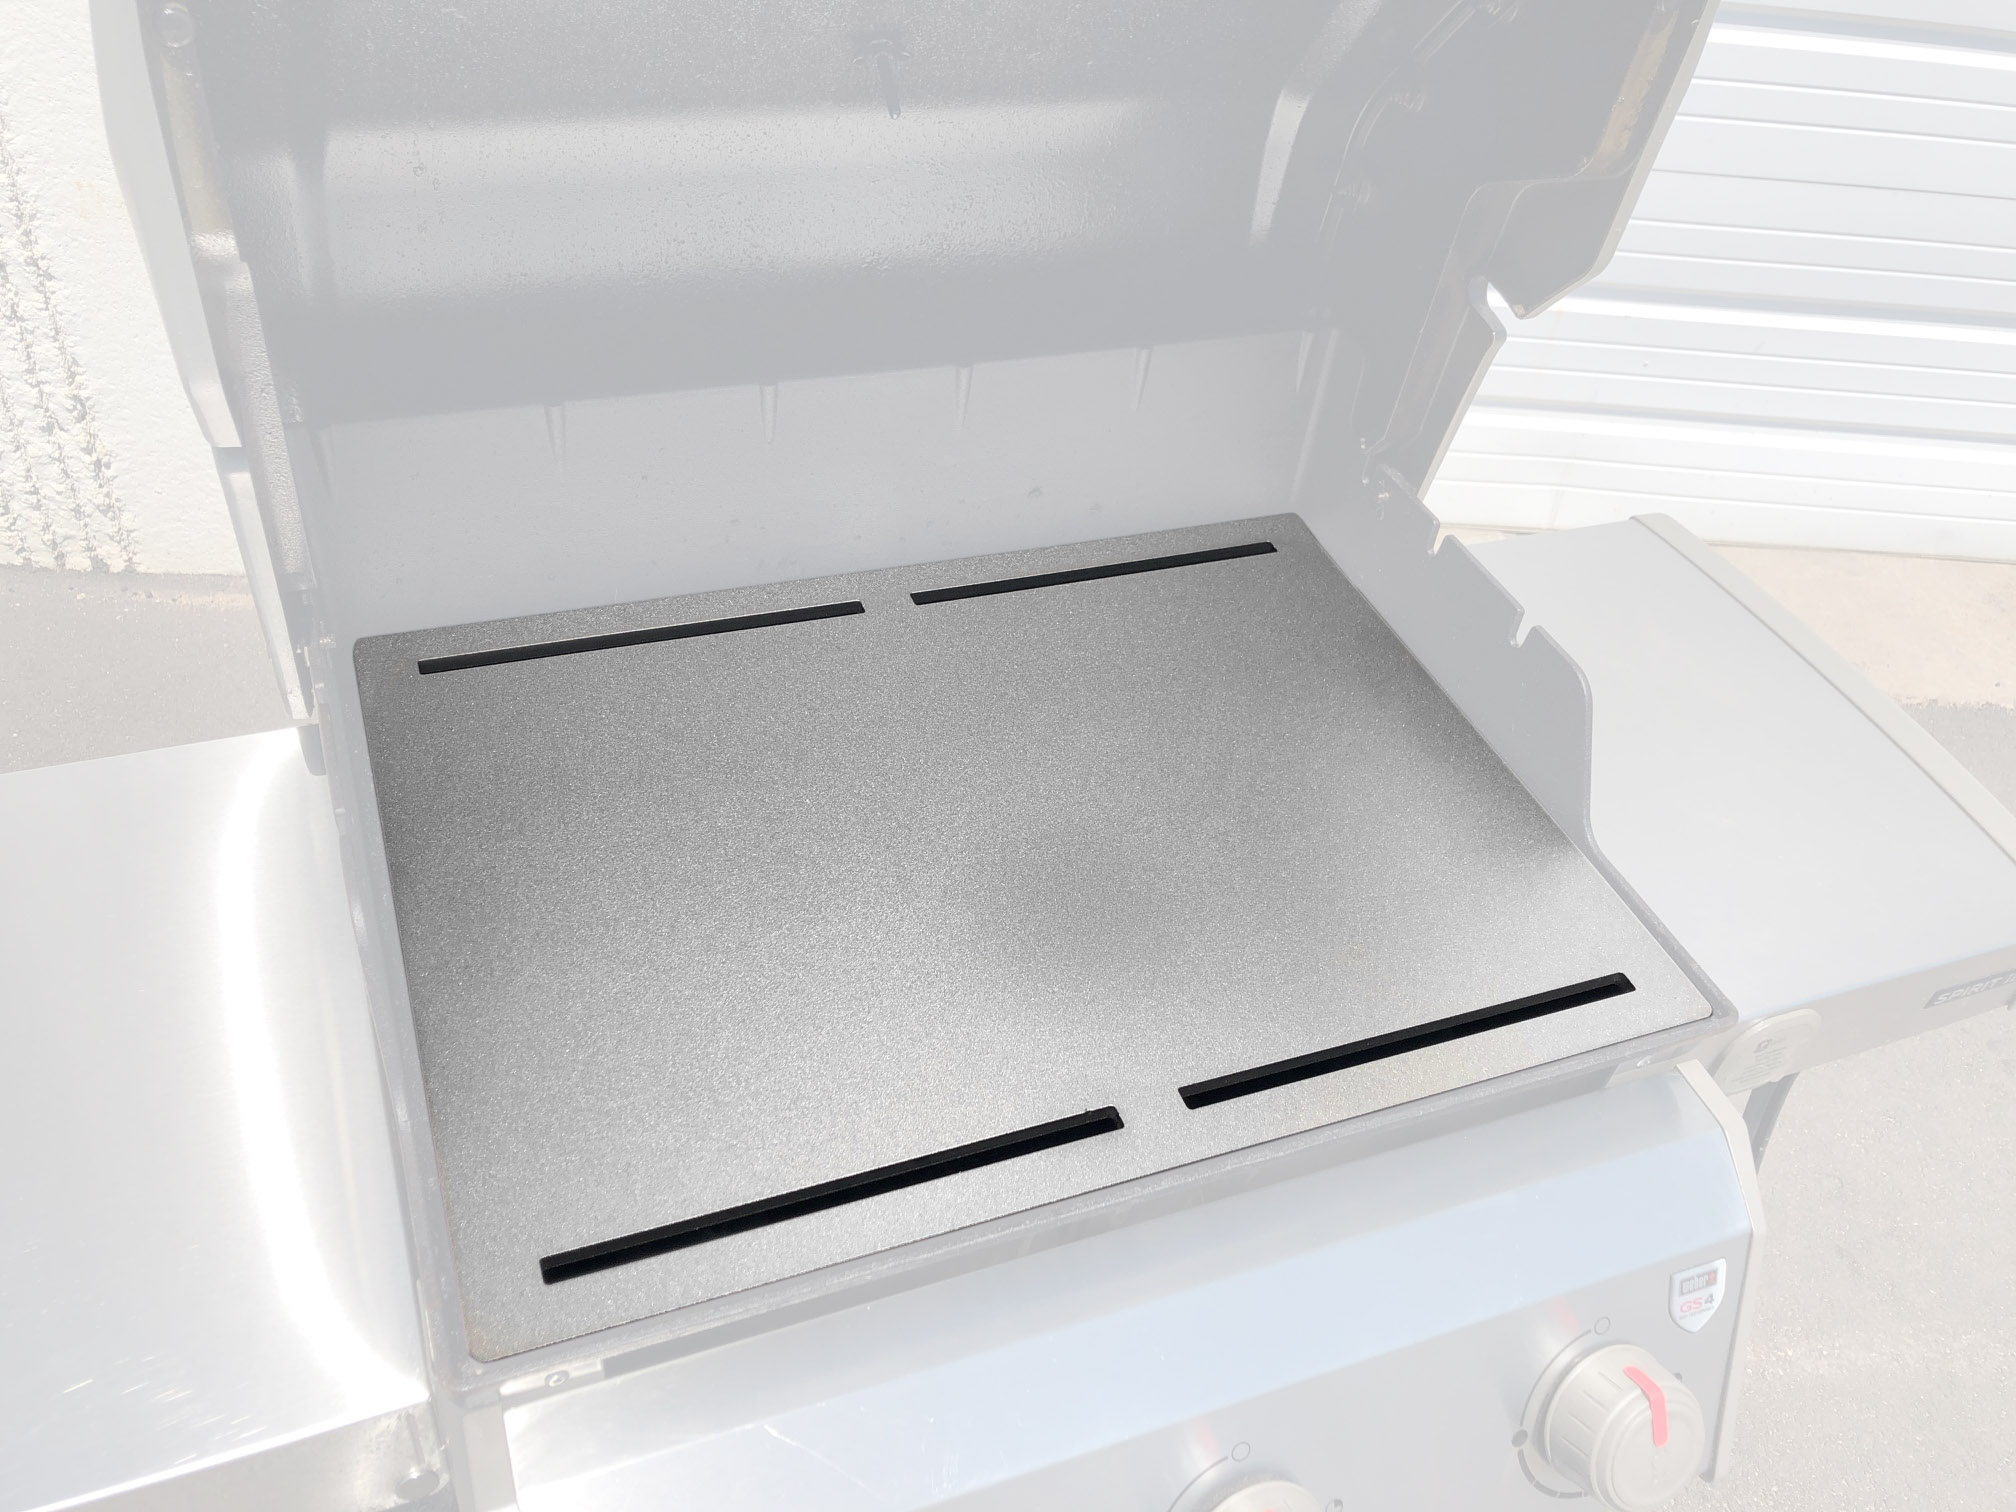 Full Conductive Grill Griddle - Fits Weber Gas Grills